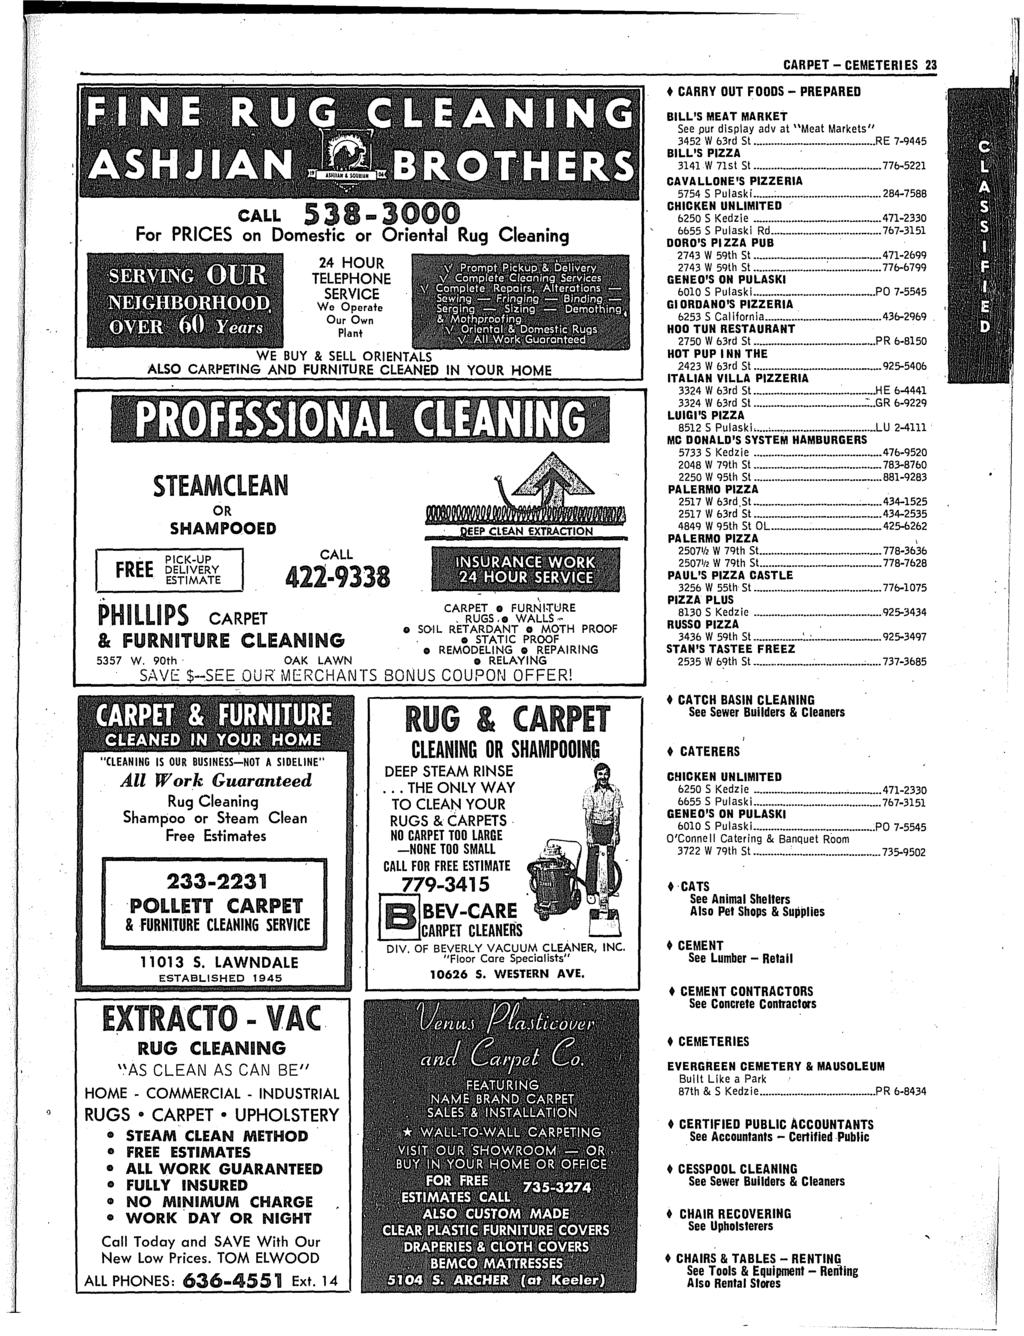 Also Carpeting And Furniture Cleaned In Your Home The